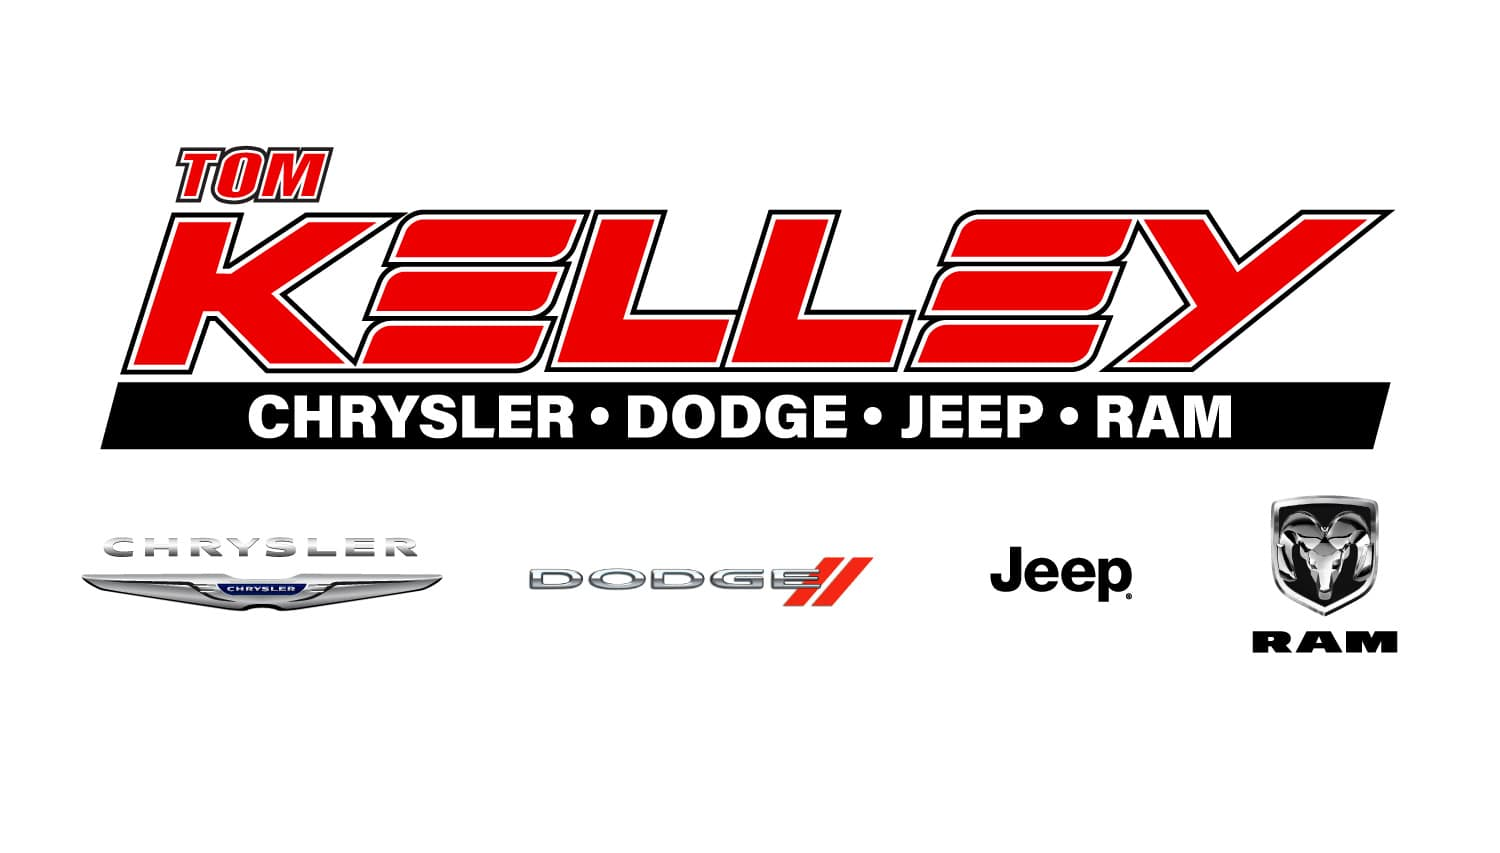 Tom-Kelley-Chrysler-Ram-Jeep3